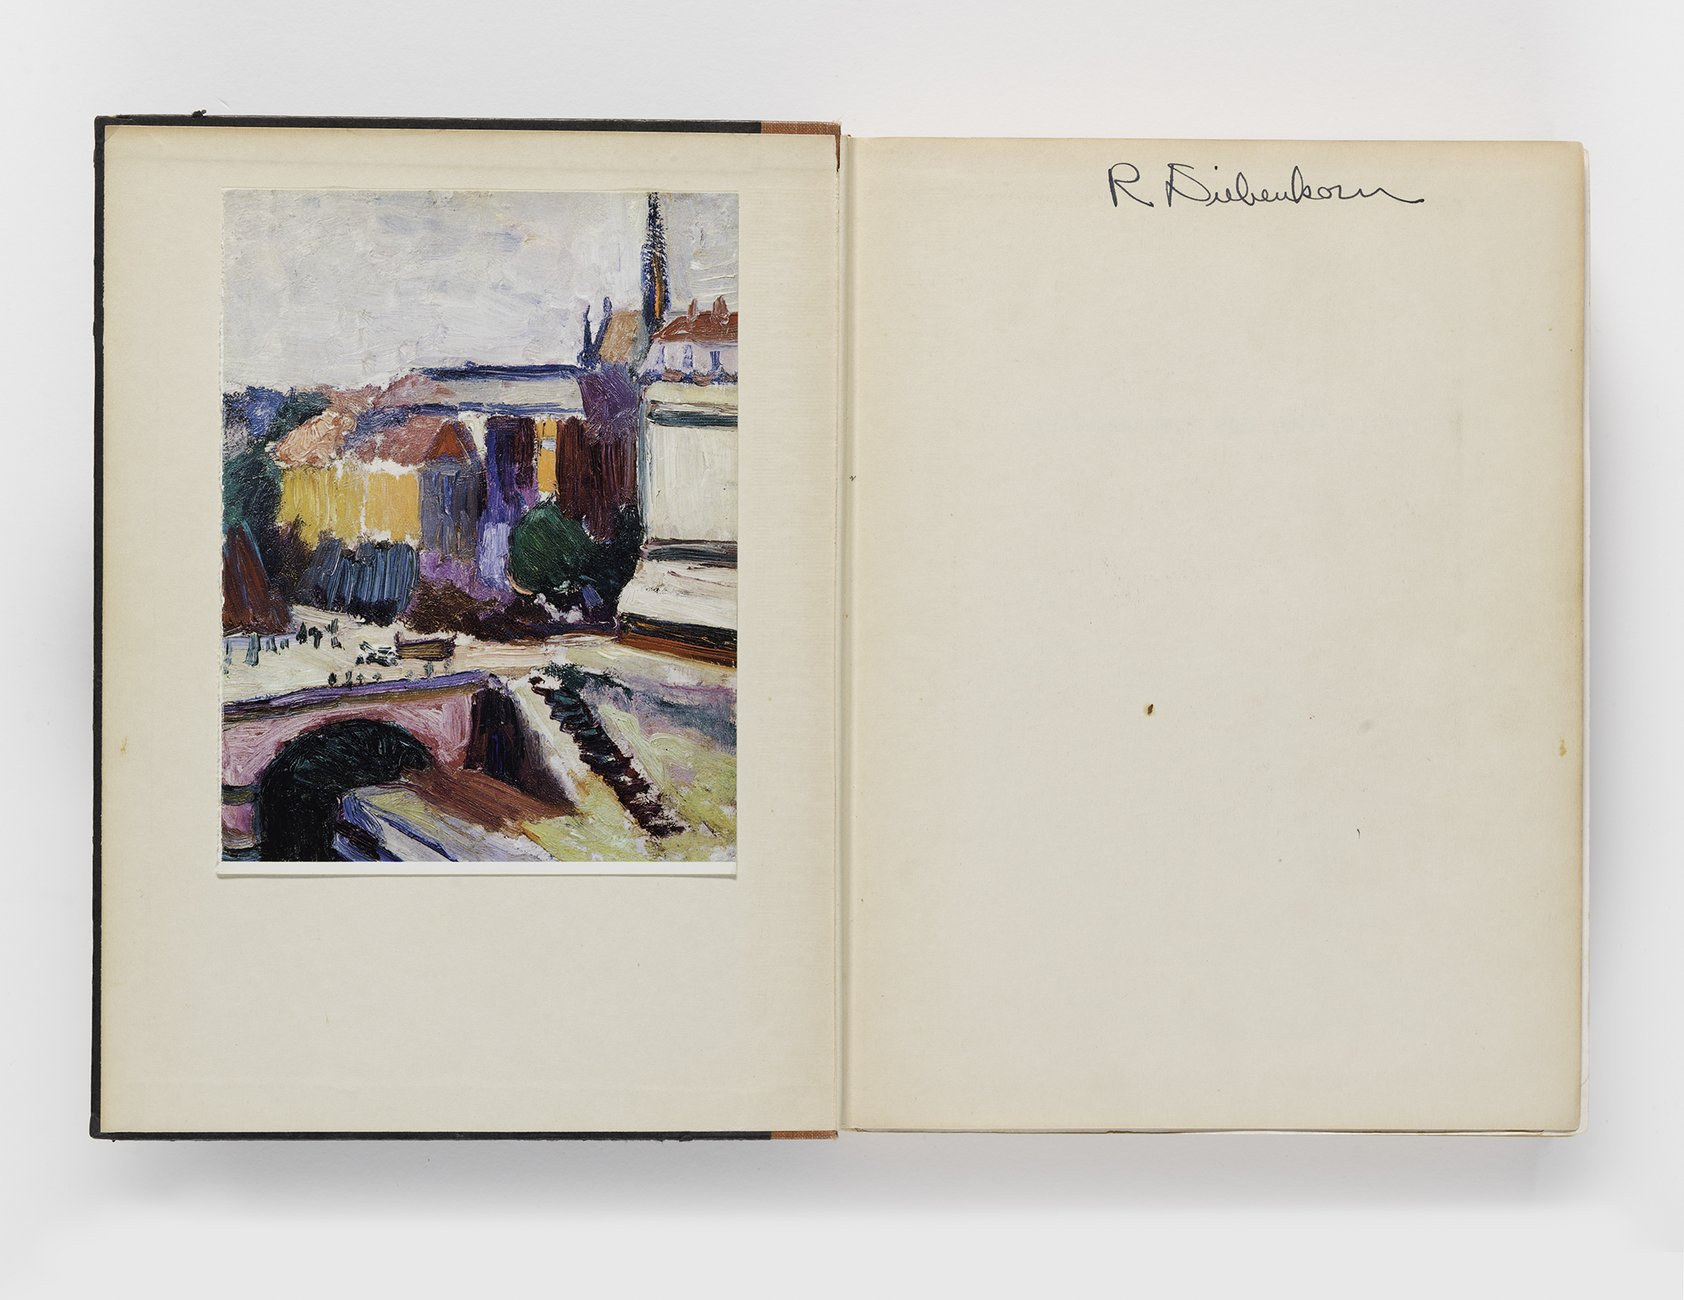 Alfred Barr, ​Matisse: His Art and His Public​, 1951 (inside cover with Richard Diebenkorn's signature)